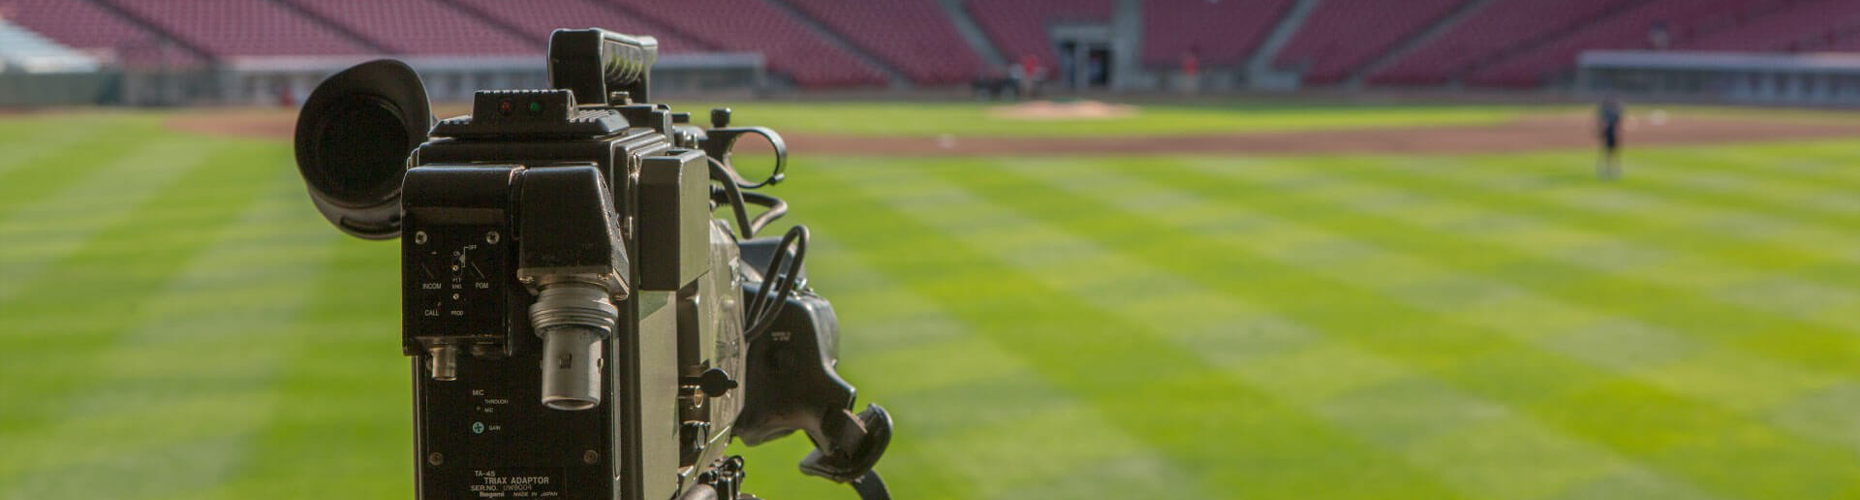 sports production services